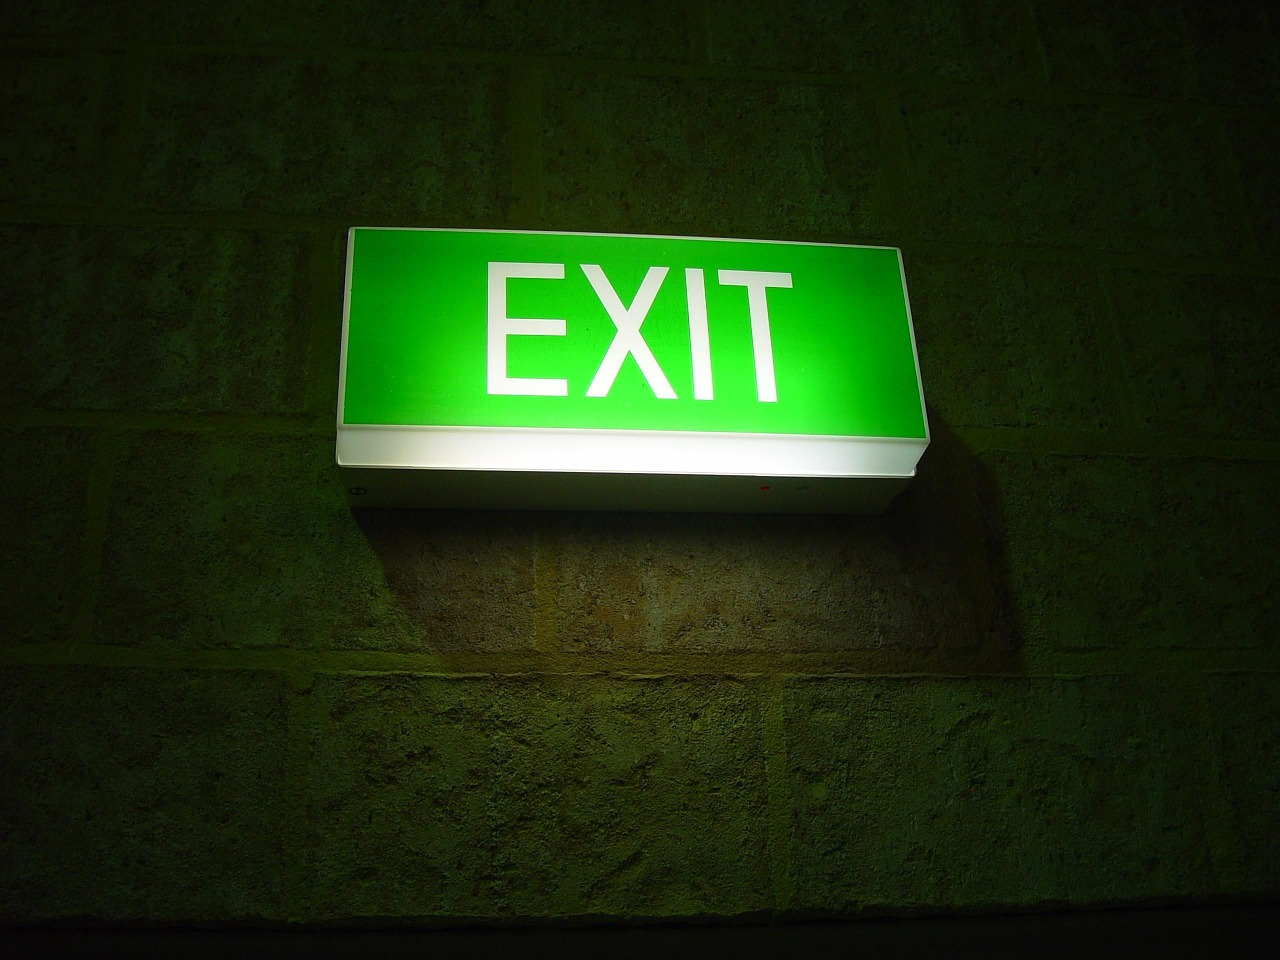 green lit exit sign